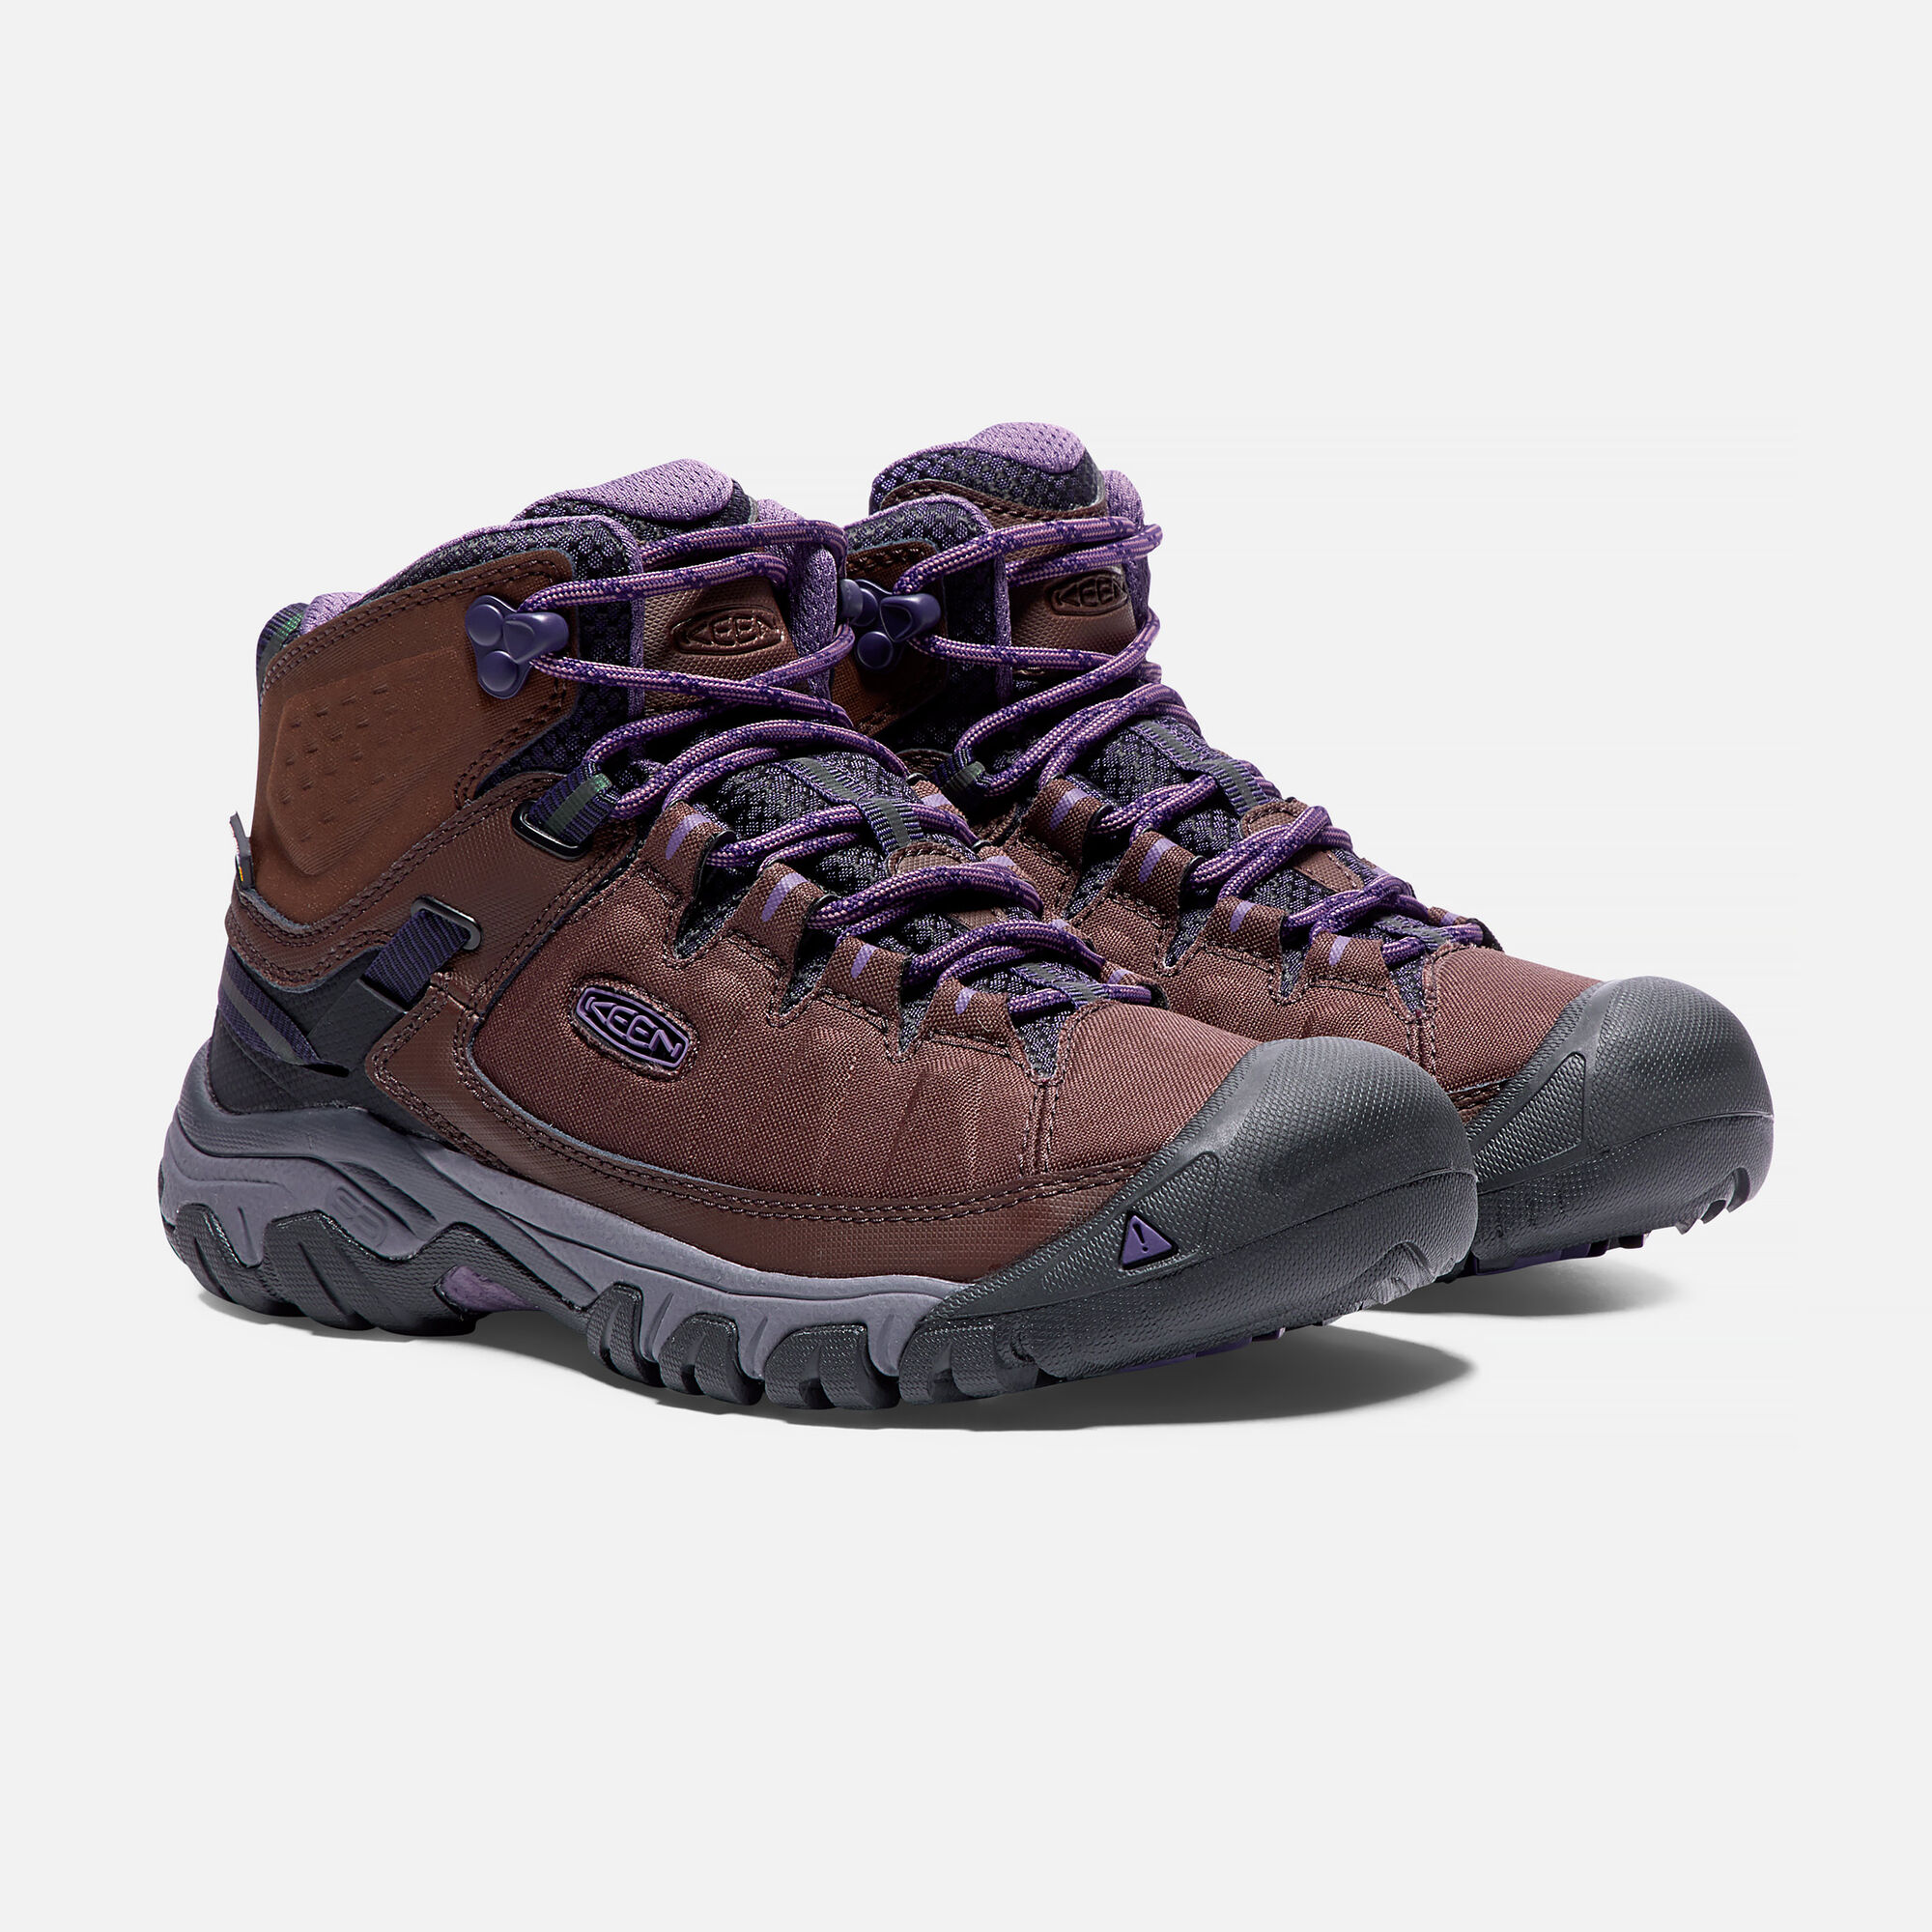 5801a170e11f Women s TARGHEE EXP Waterproof Mid in French Roast Purple Plumeria - small  view.